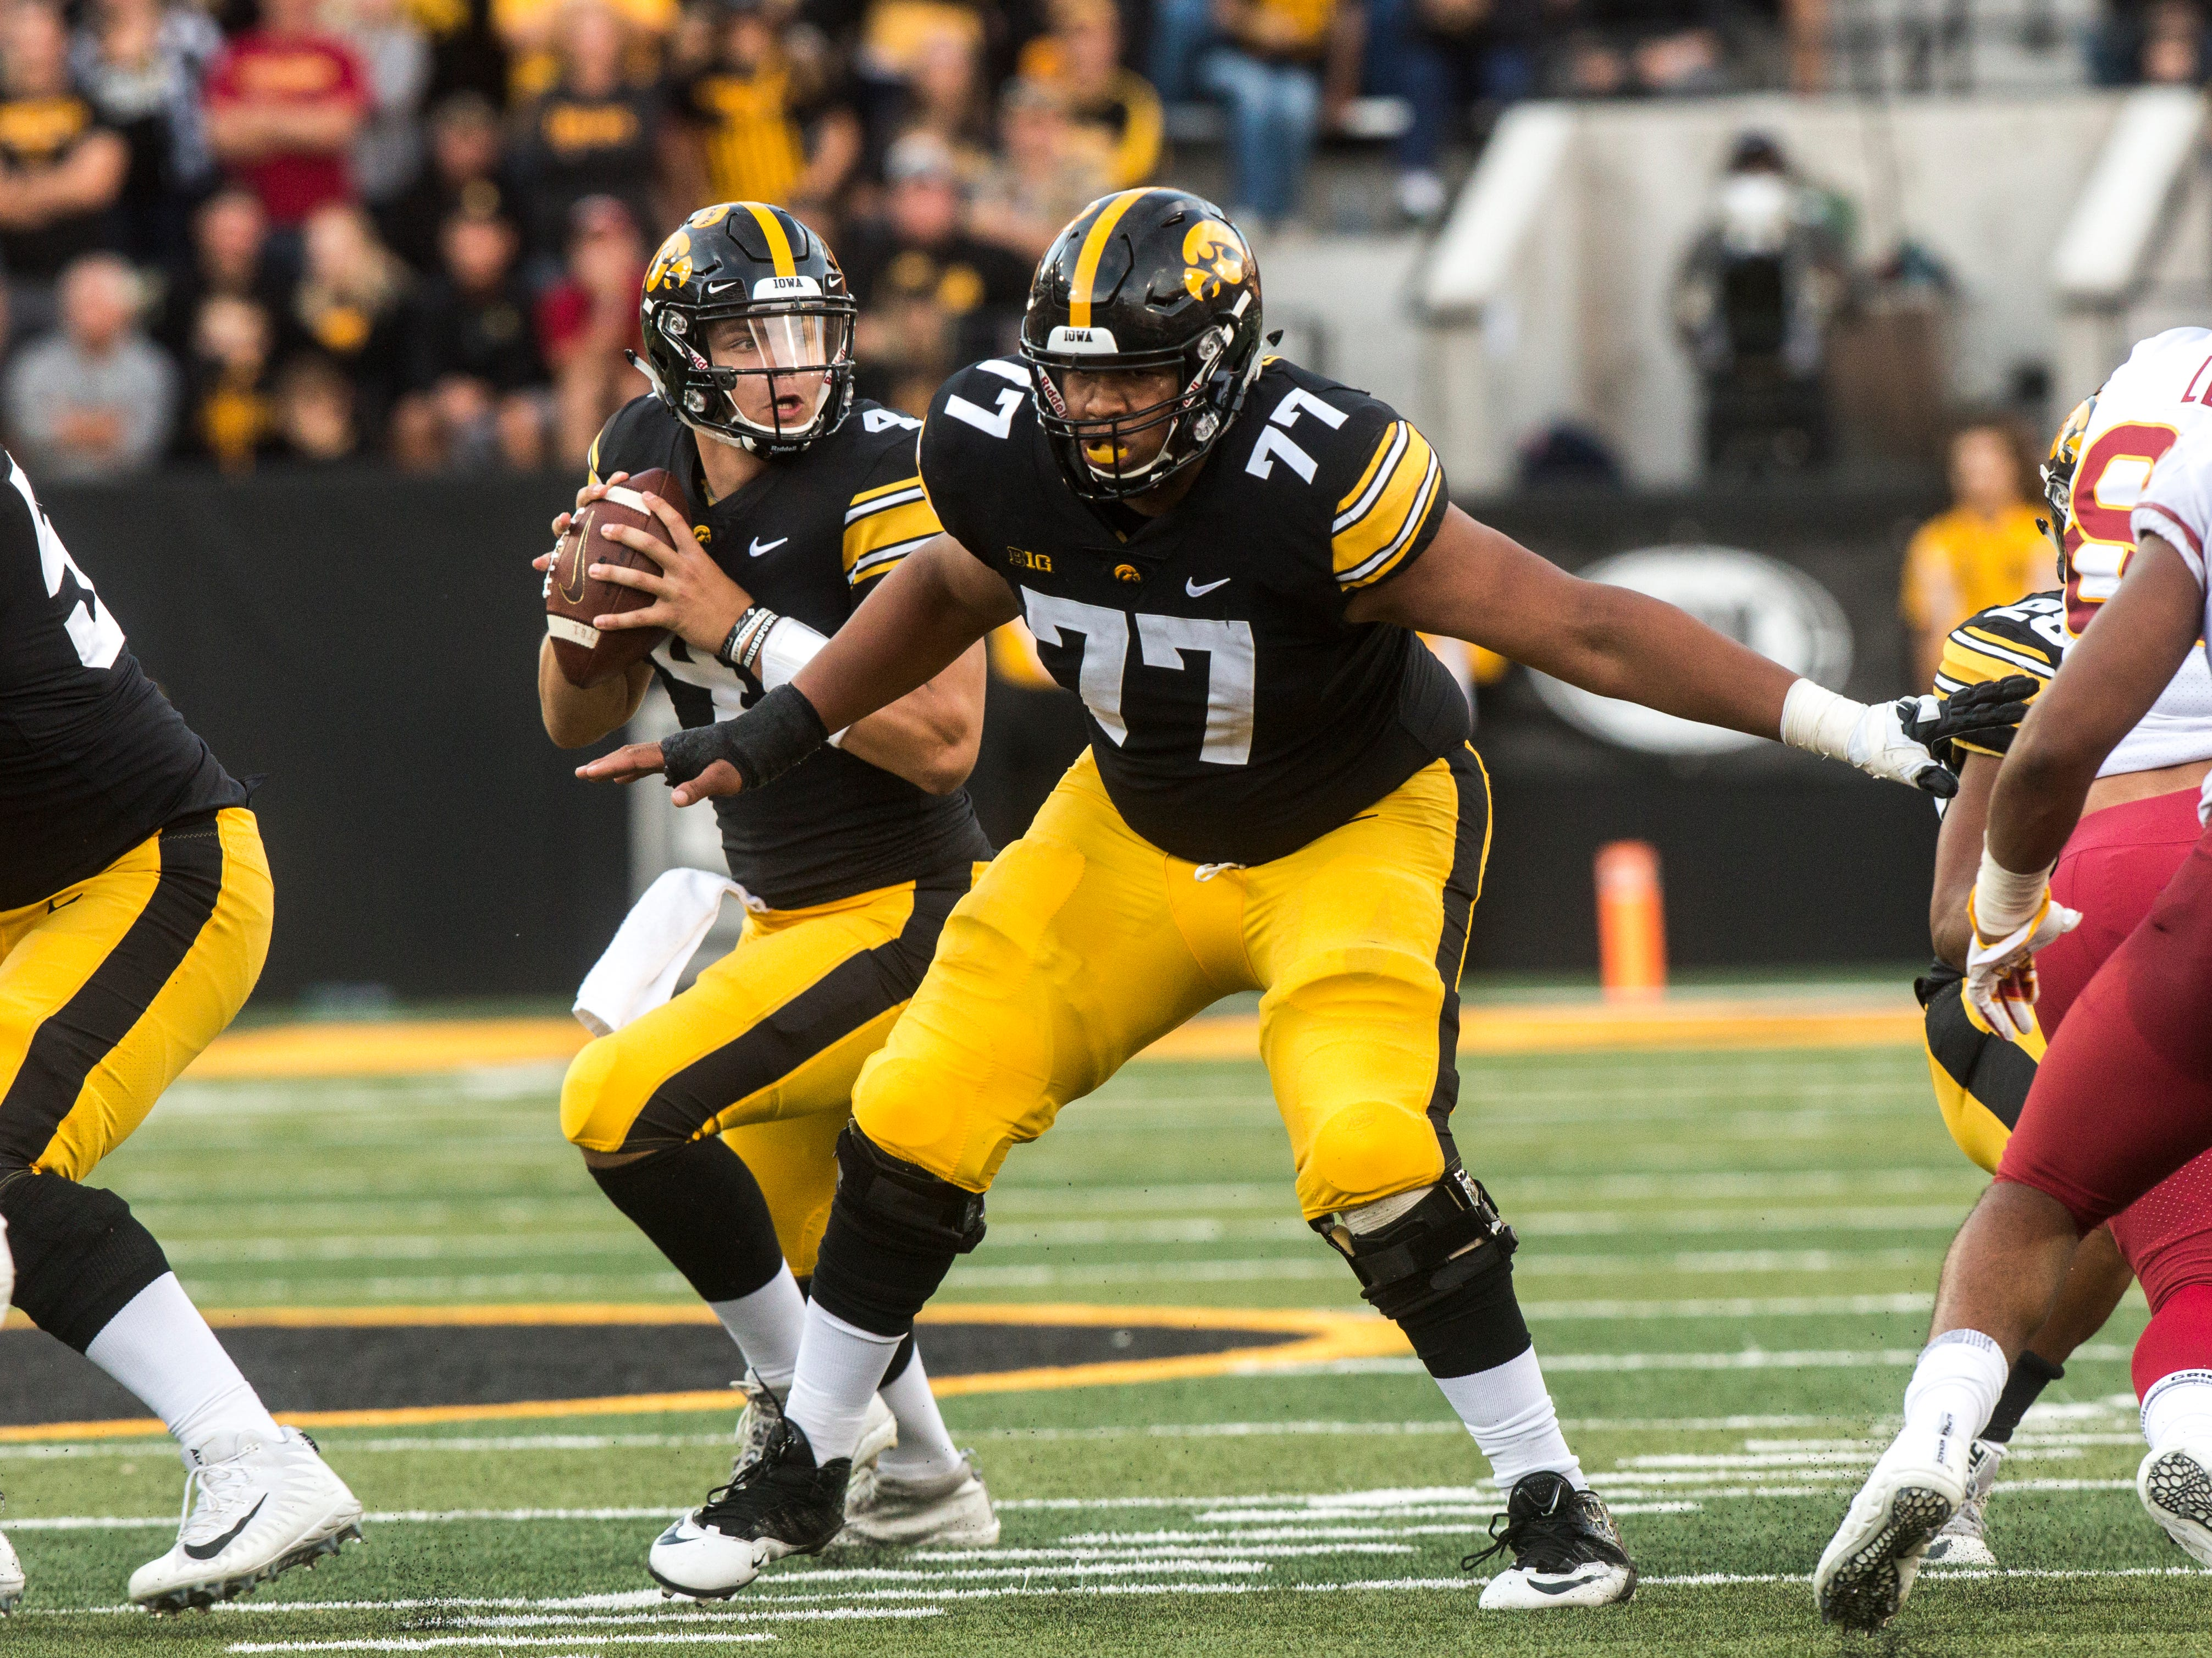 Iowa quarterback Nate Stanley (4) looks to pass while offensive lineman Alaric Jackson (77) protects the pocket during the Cy-Hawk NCAA football game on Saturday, Sept. 8, 2018, at Kinnick Stadium in Iowa City.